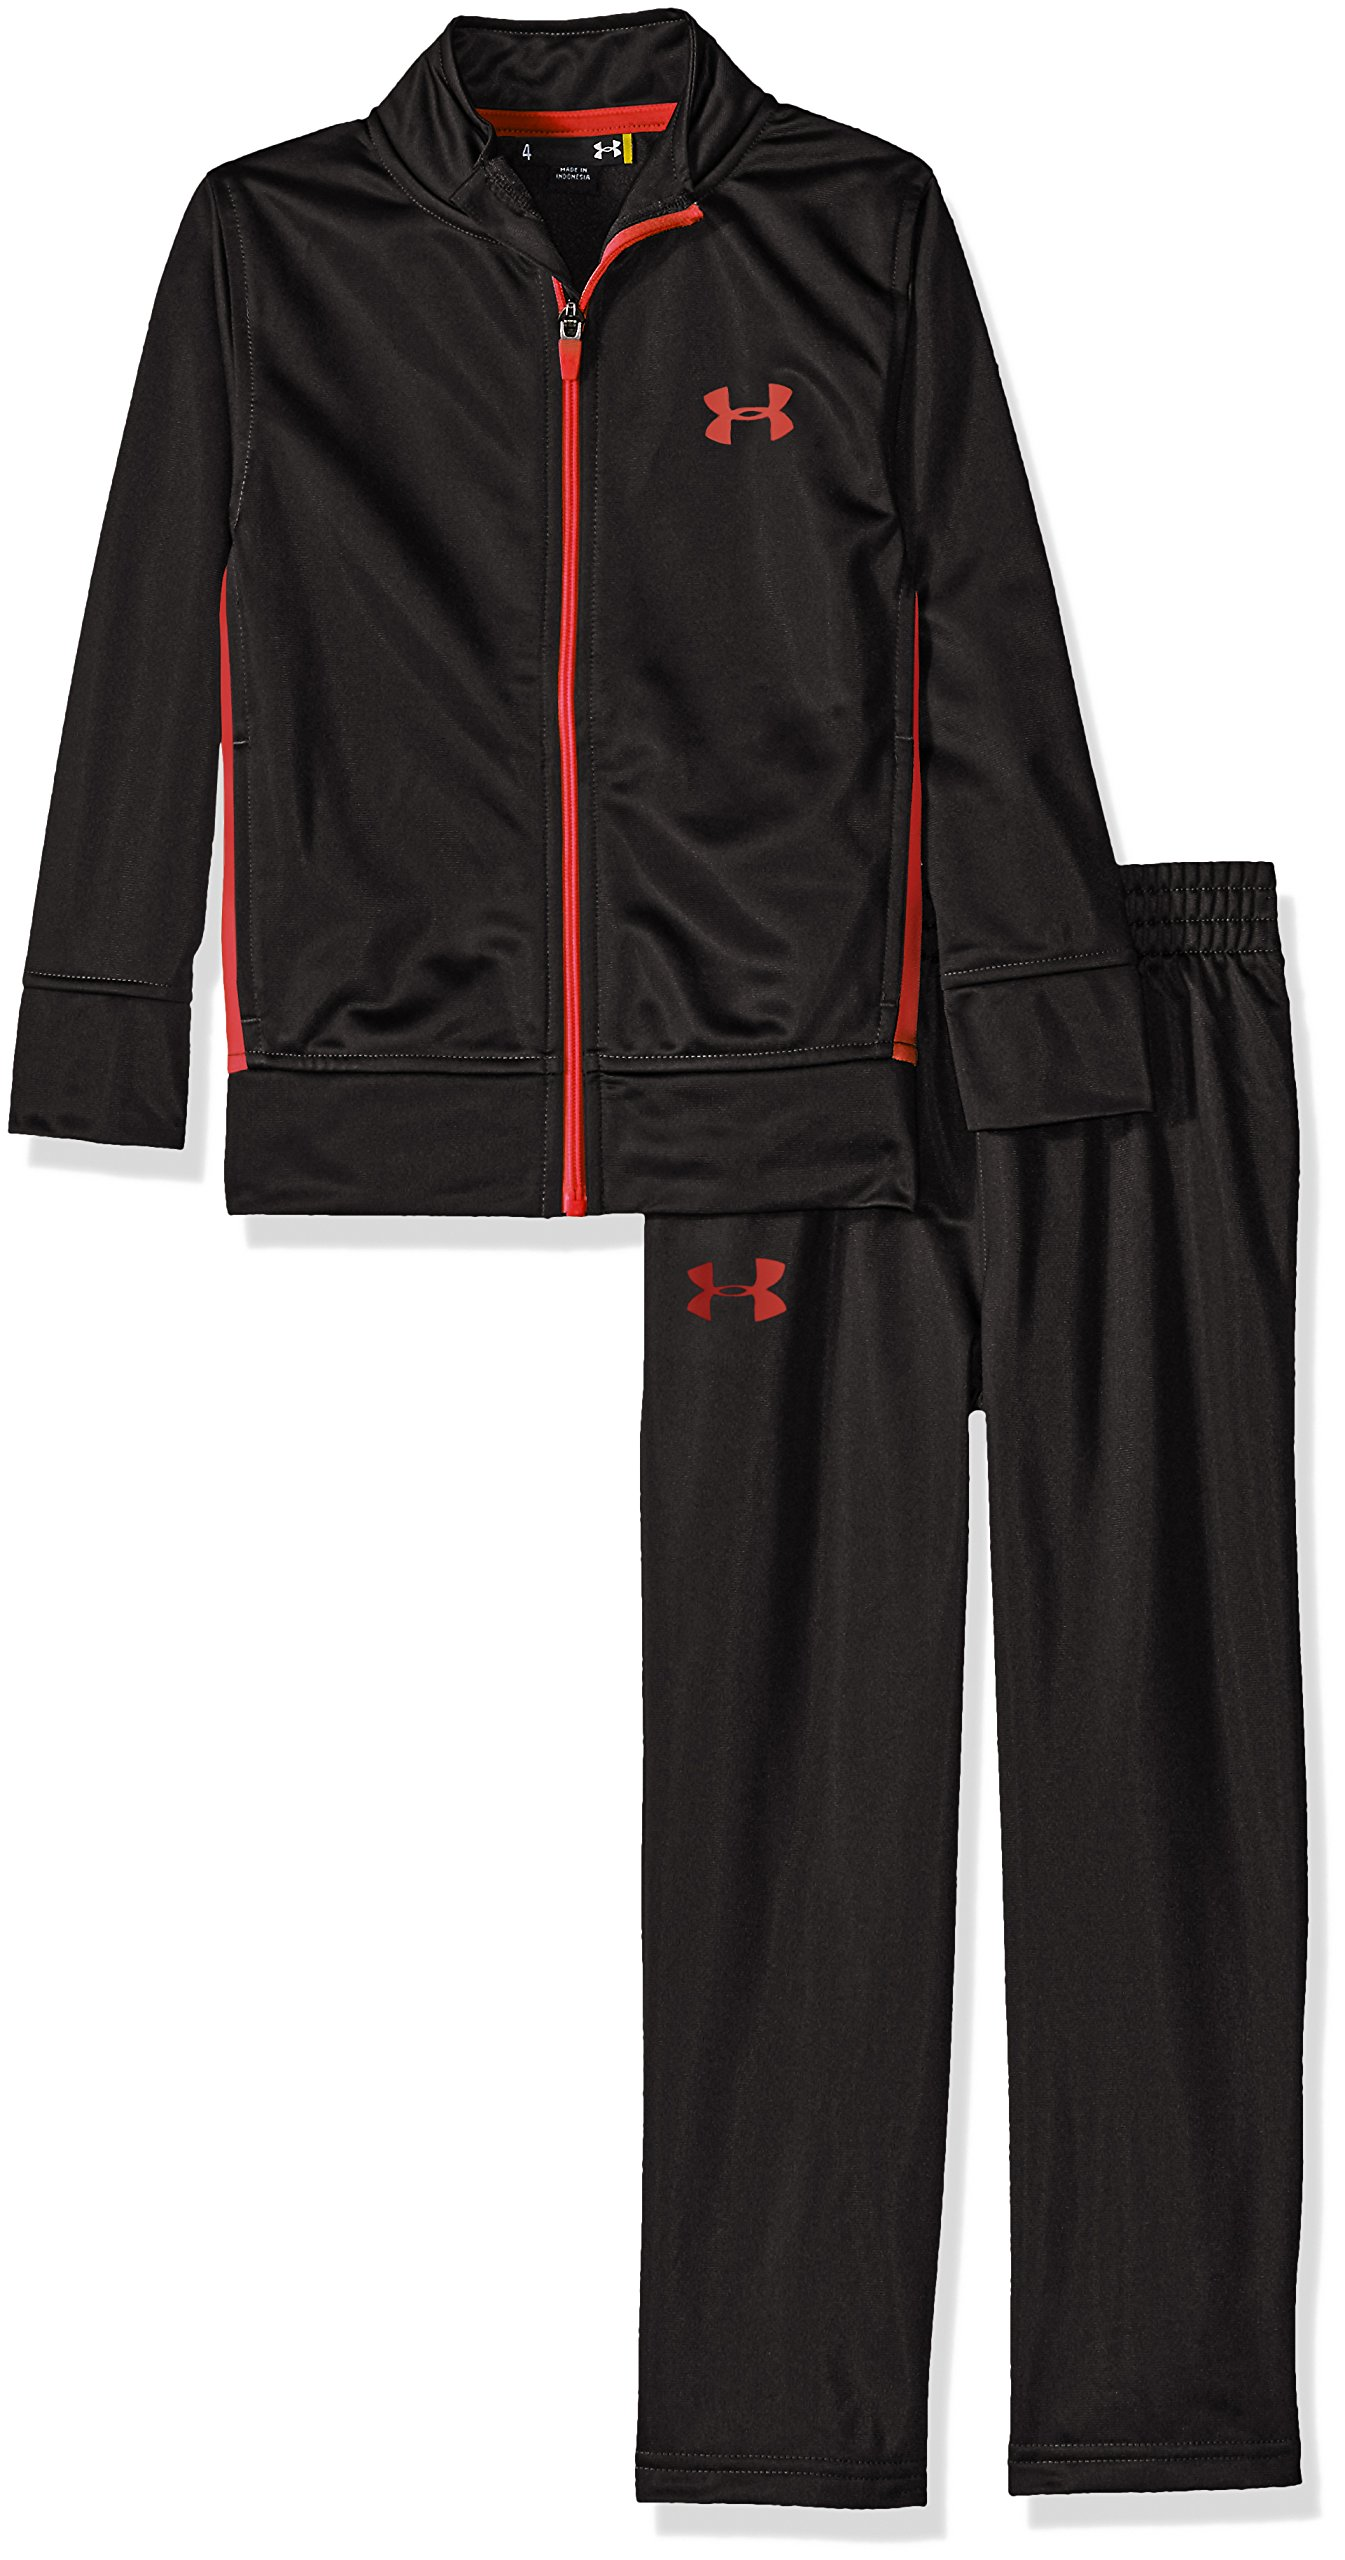 Under Armour Toddler Boys' Zip Jacket and Pant Set, Black, 2T